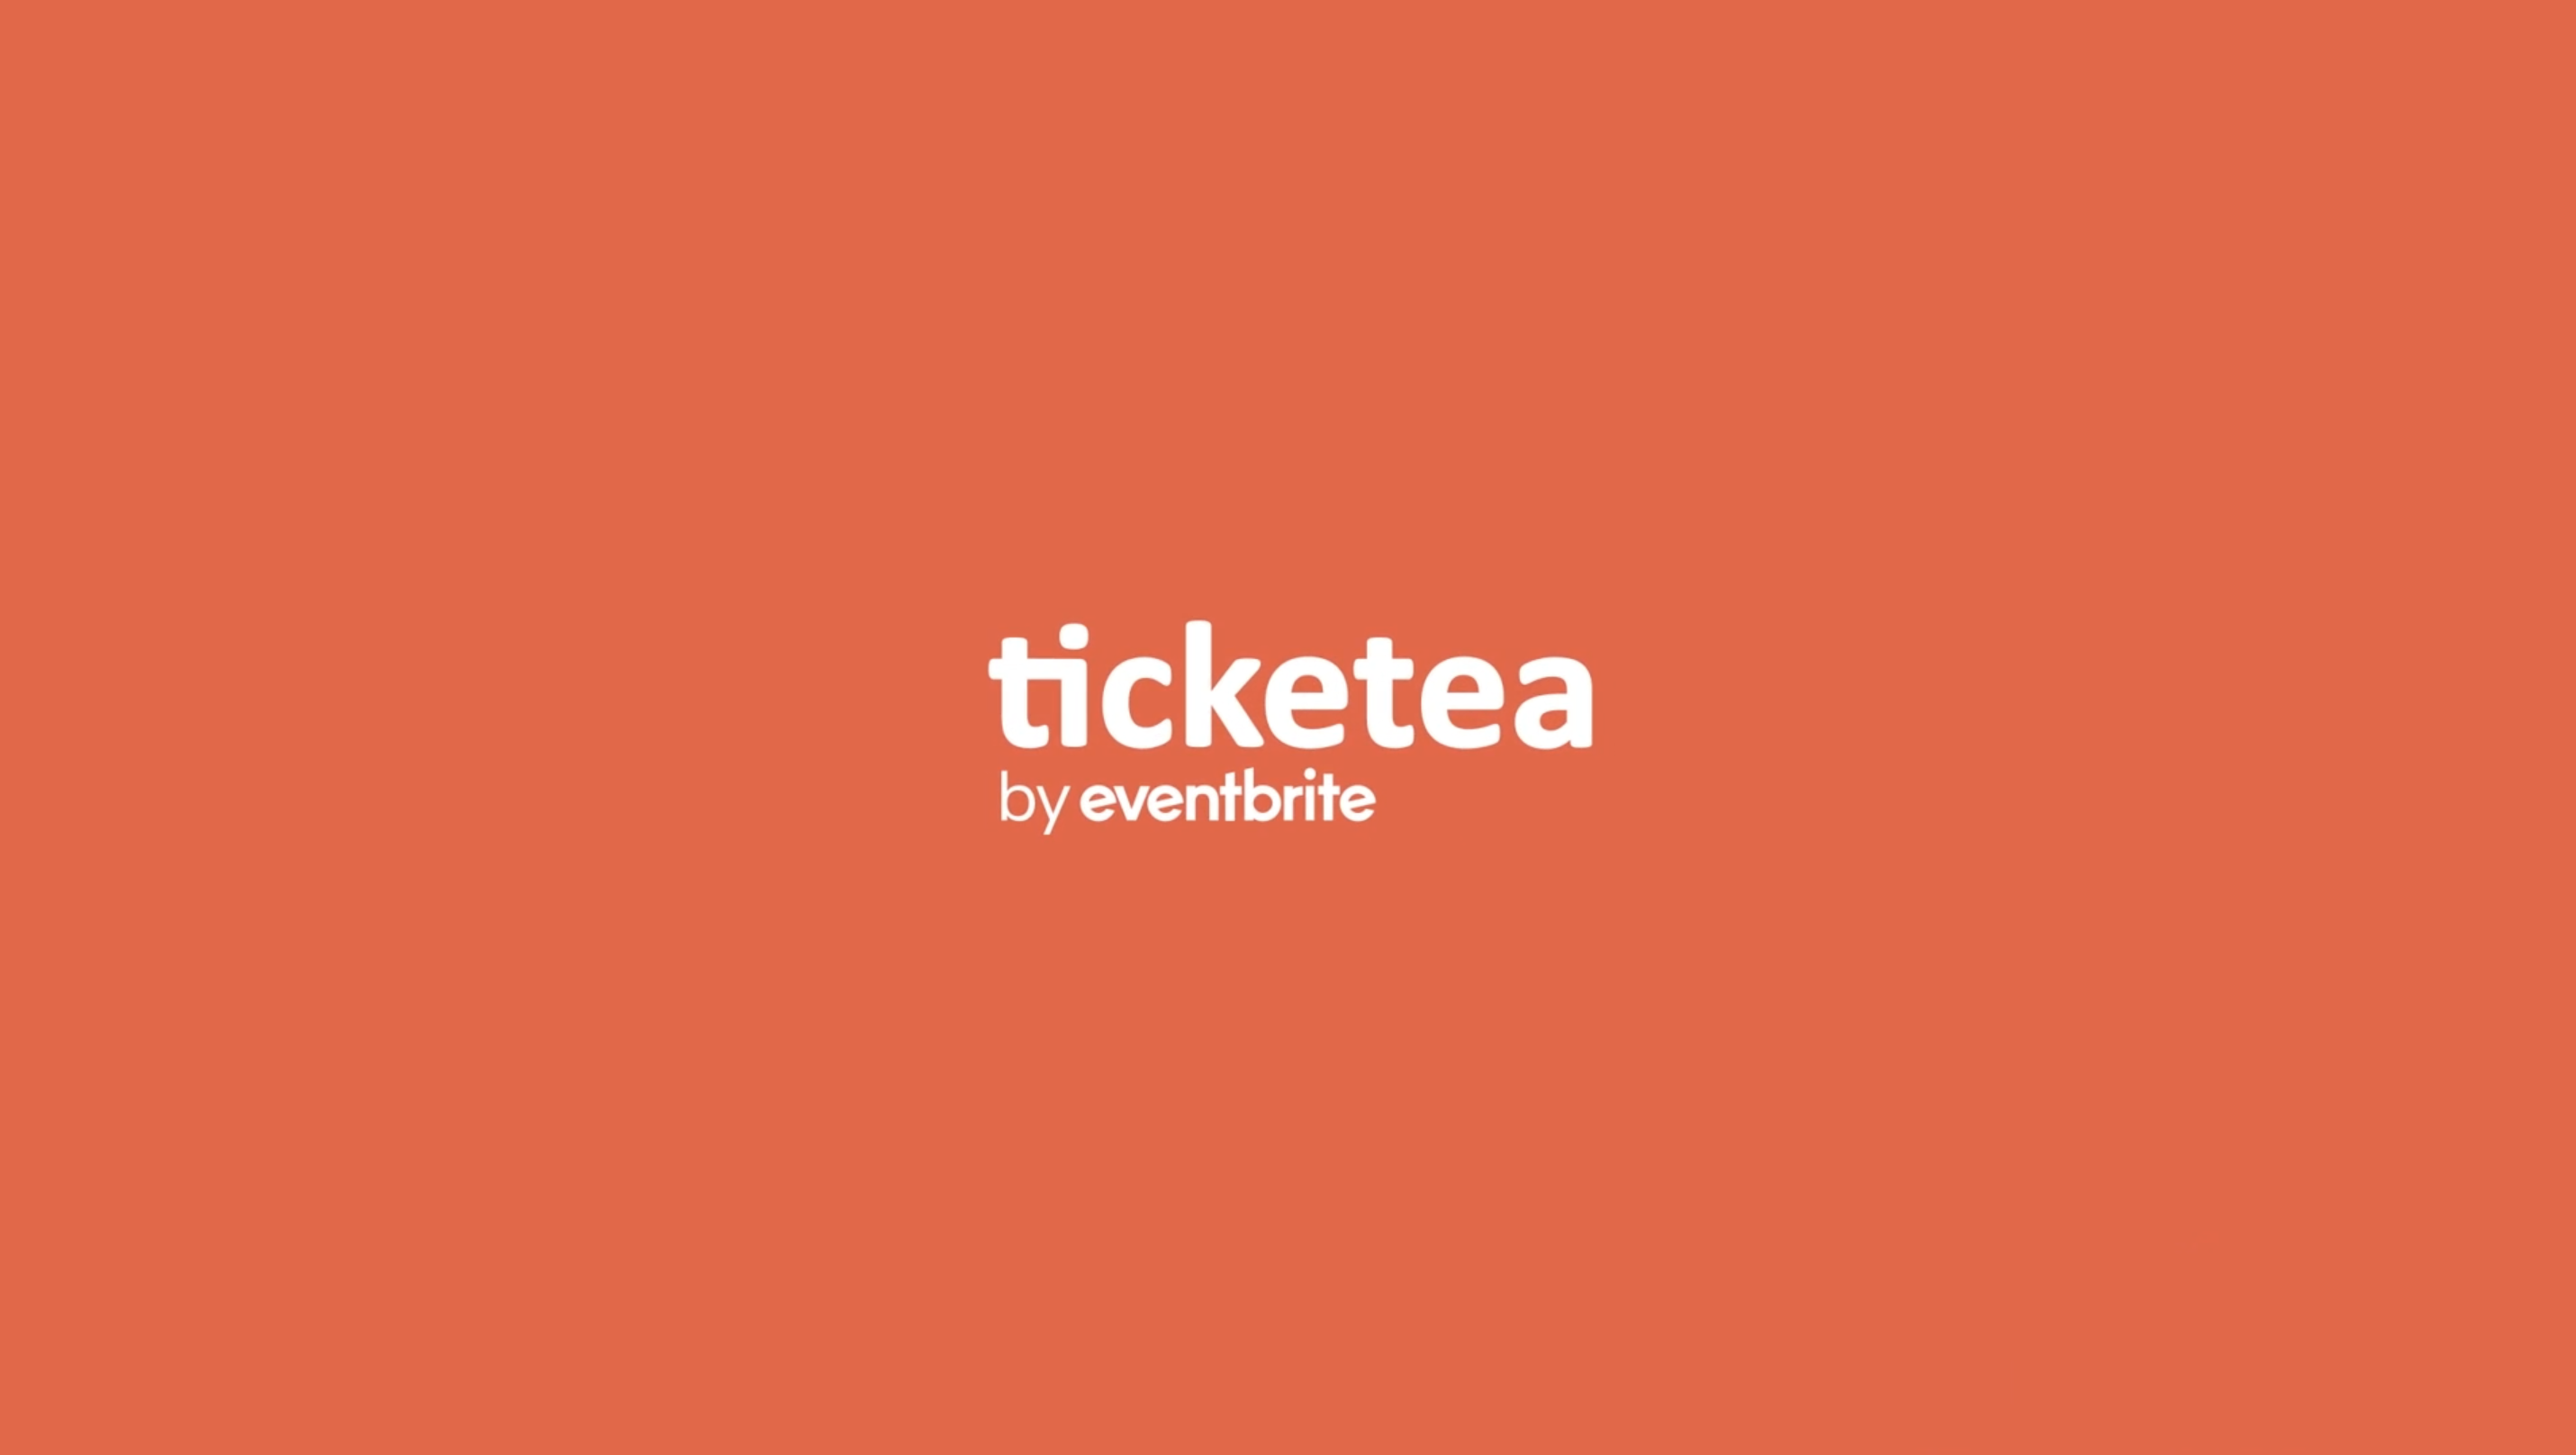 ticketea